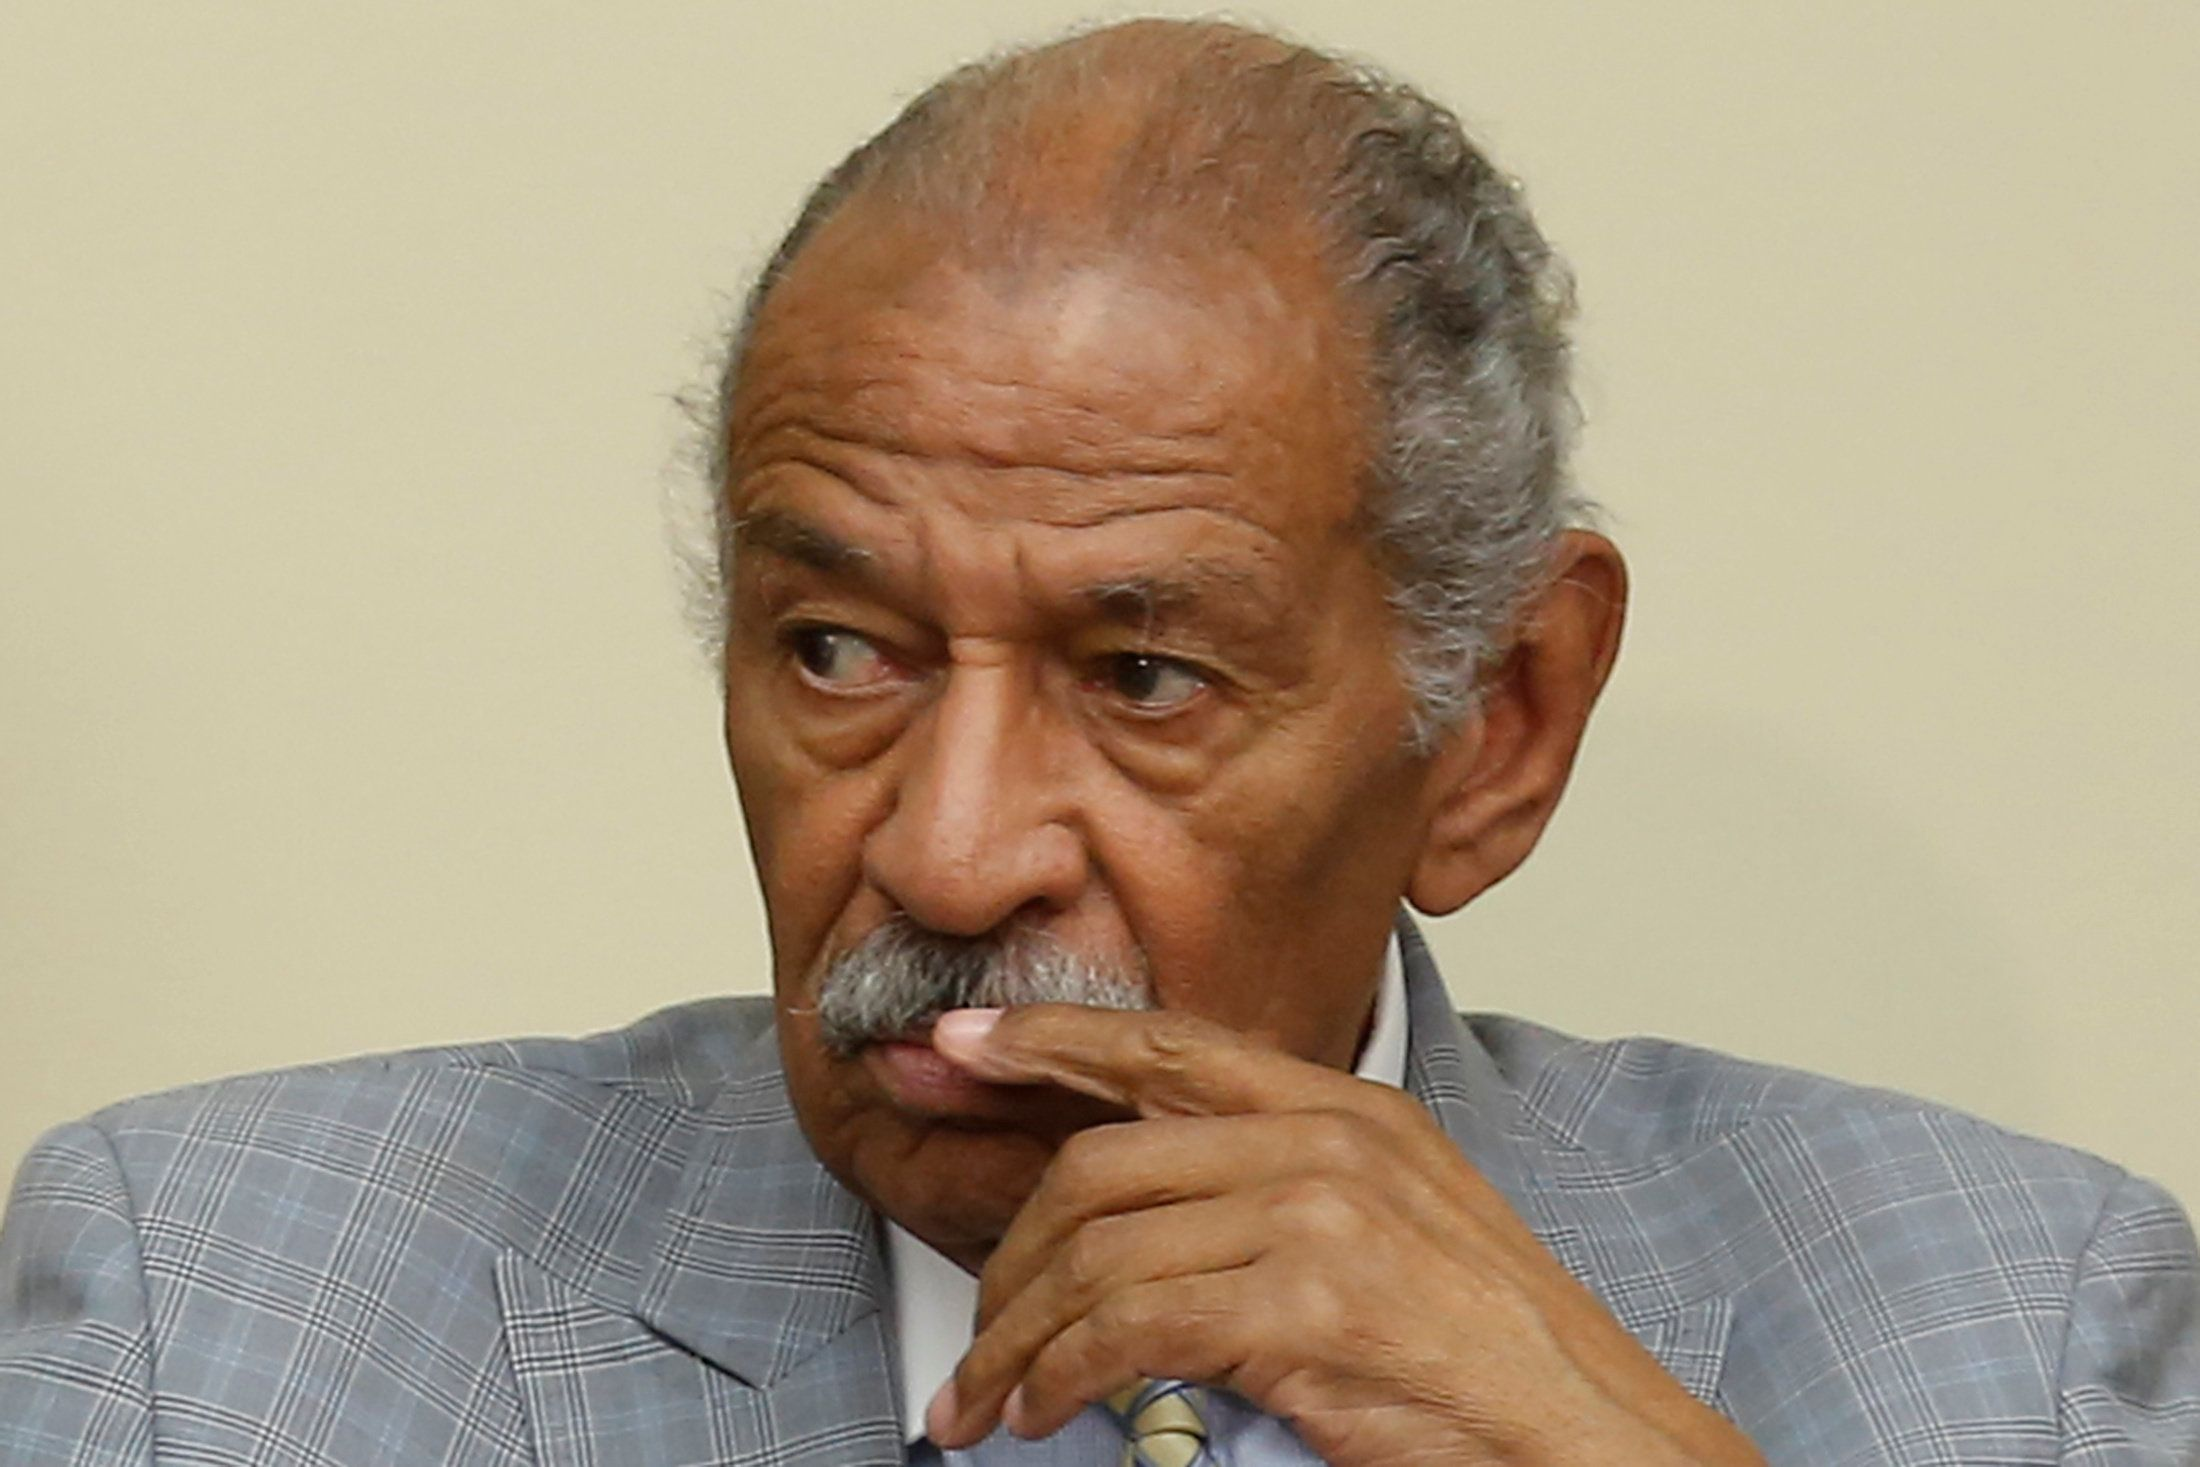 U.S. Representative John Conyers (D-MI) participates in a House Judiciary Committee hearing on Capitol Hill in Washington, U.S. July 12, 2016. Picture taken  July 12, 2016.  REUTERS/Jonathan Ernst